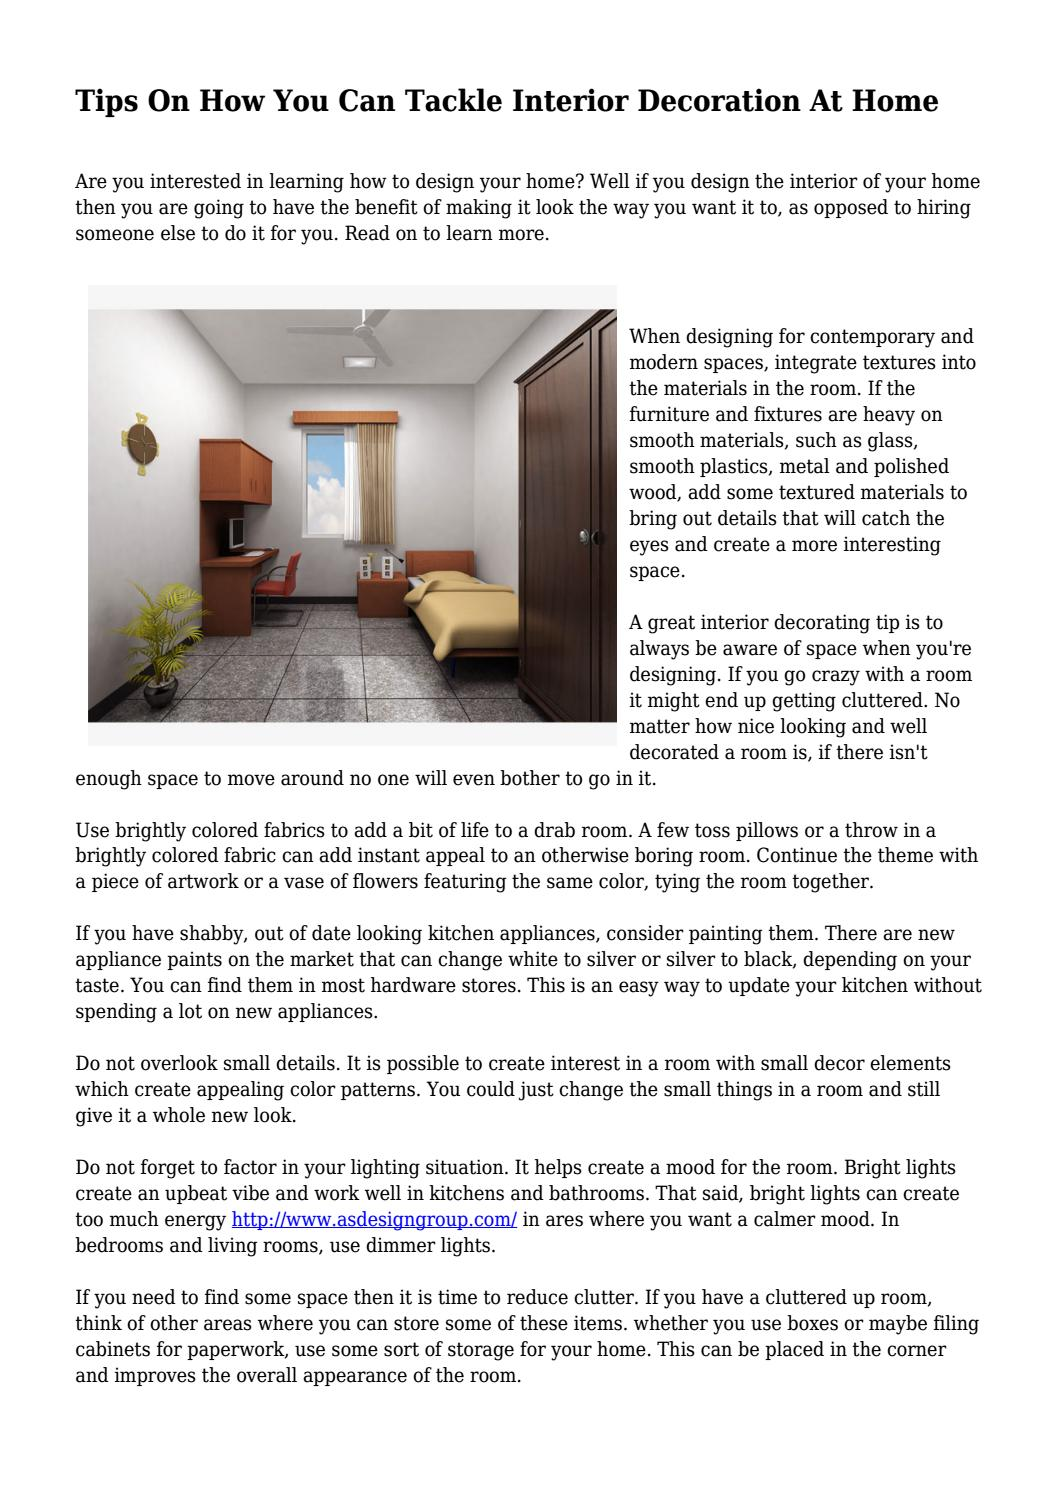 Tips on how you can tackle interior decoration at home by campbelltojxsyiojbcristiadrian issuu